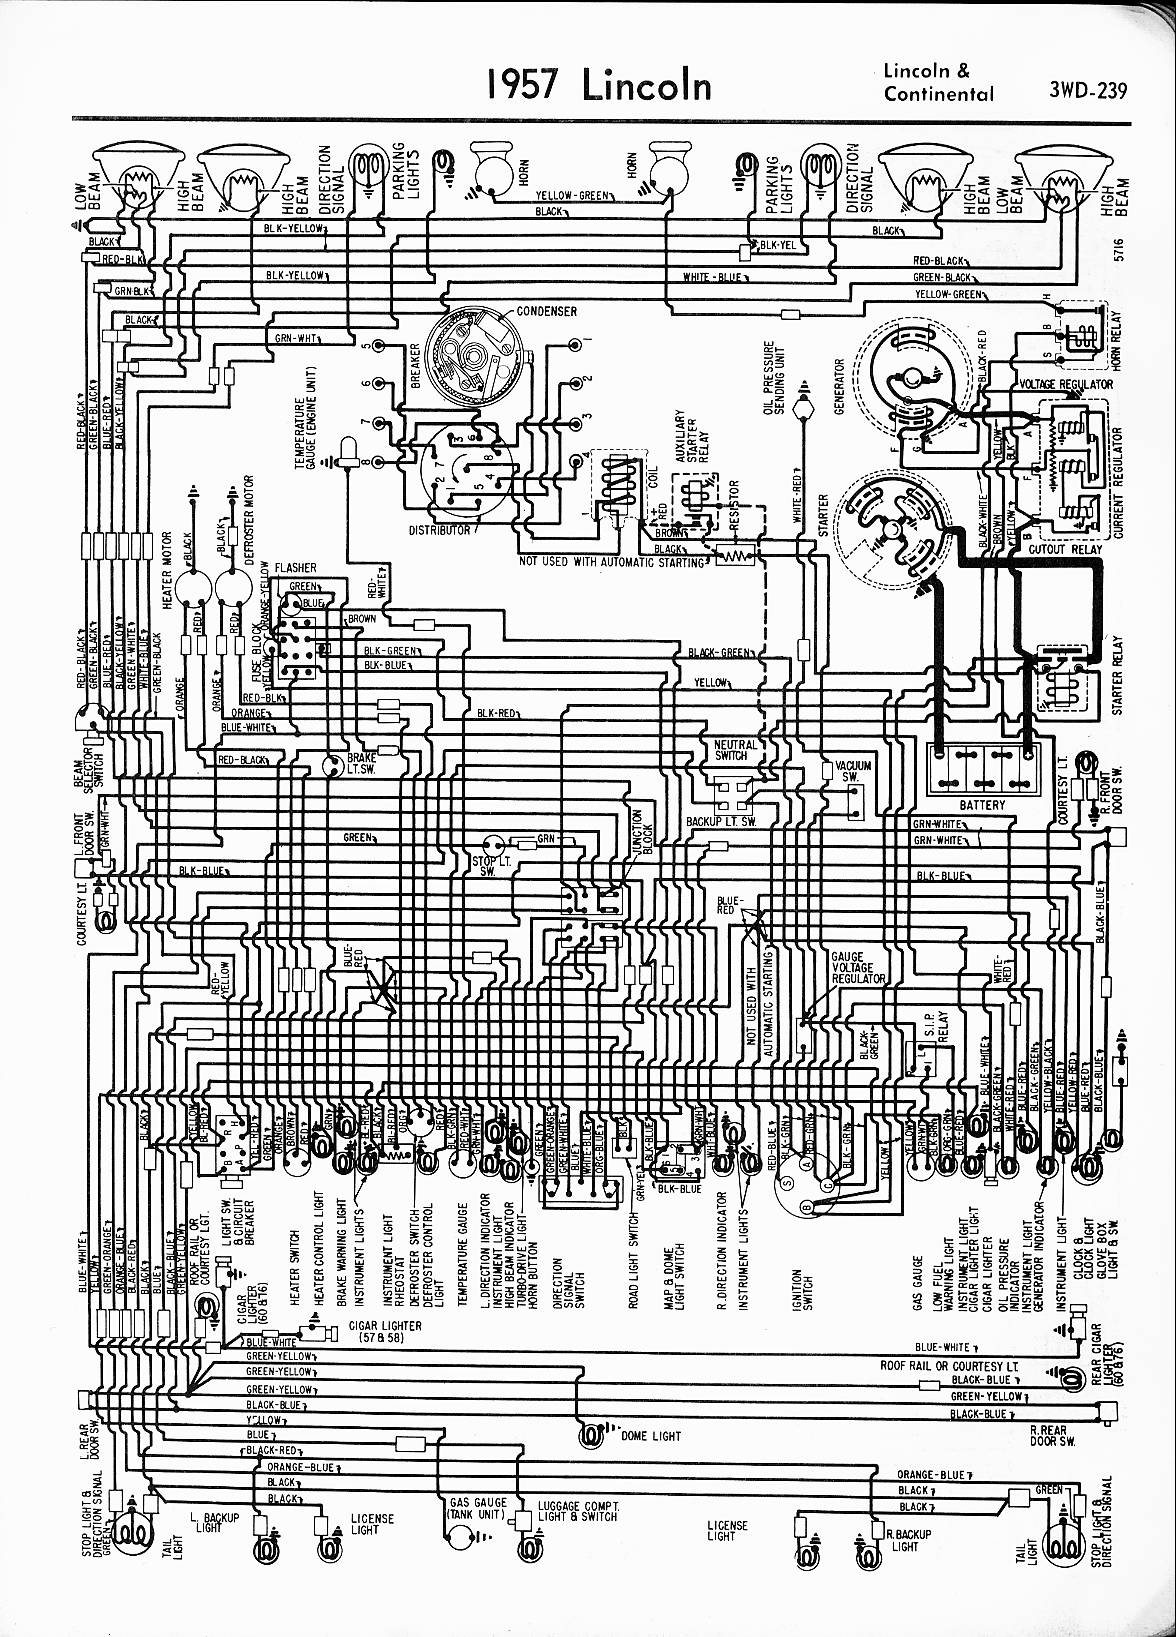 62 Lincoln Engine Diagram Wiring Library Relay In A Box Pdf 1957 Continental Diagrams